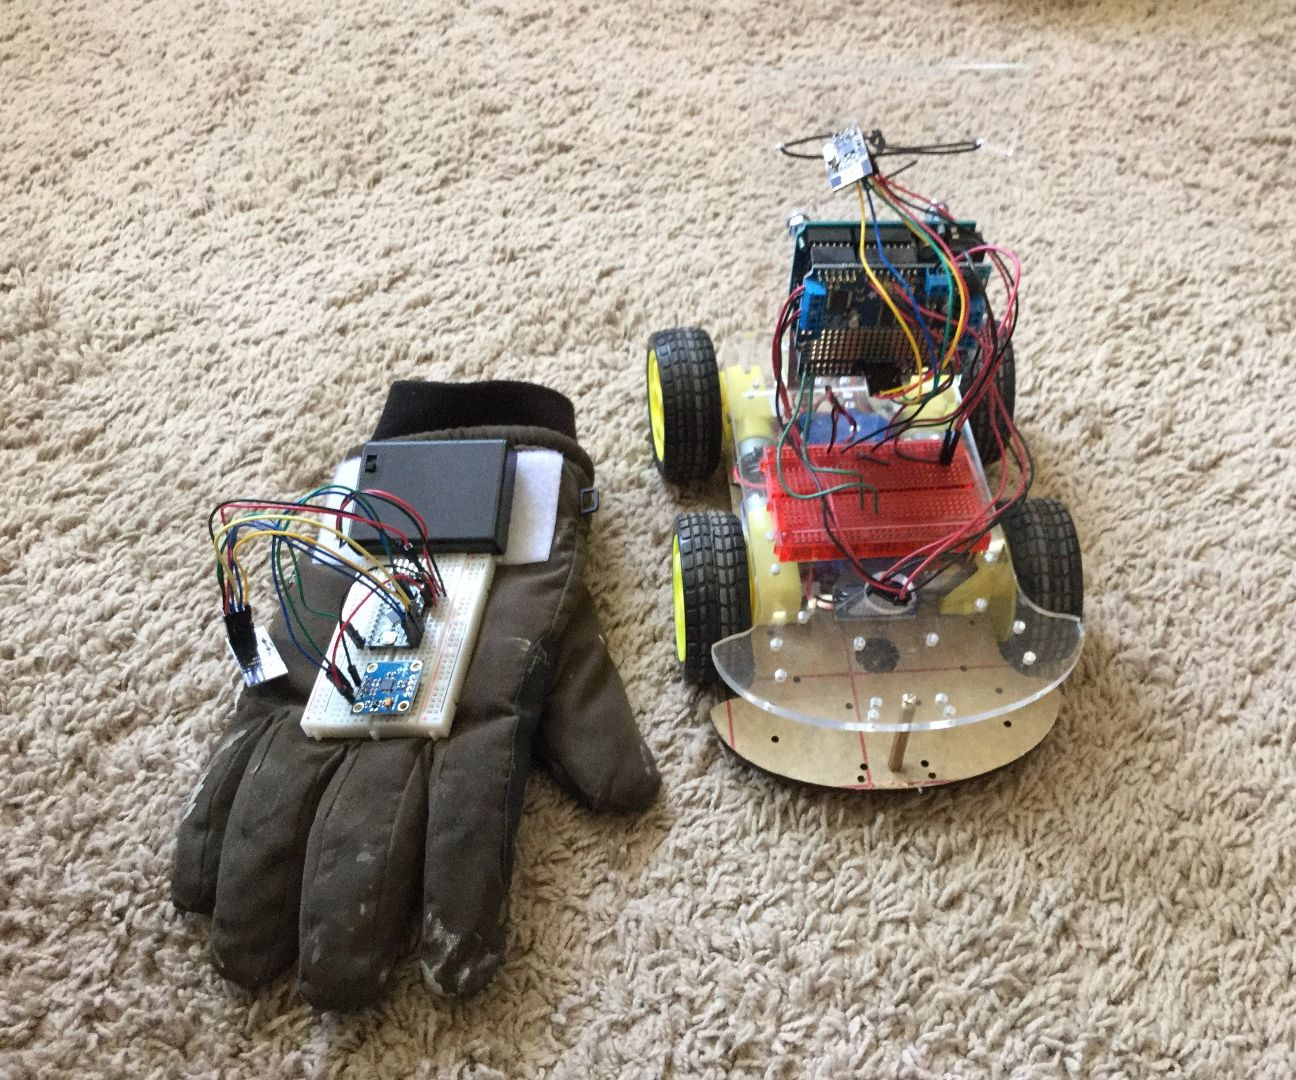 RC Car Controlled by Old Glove